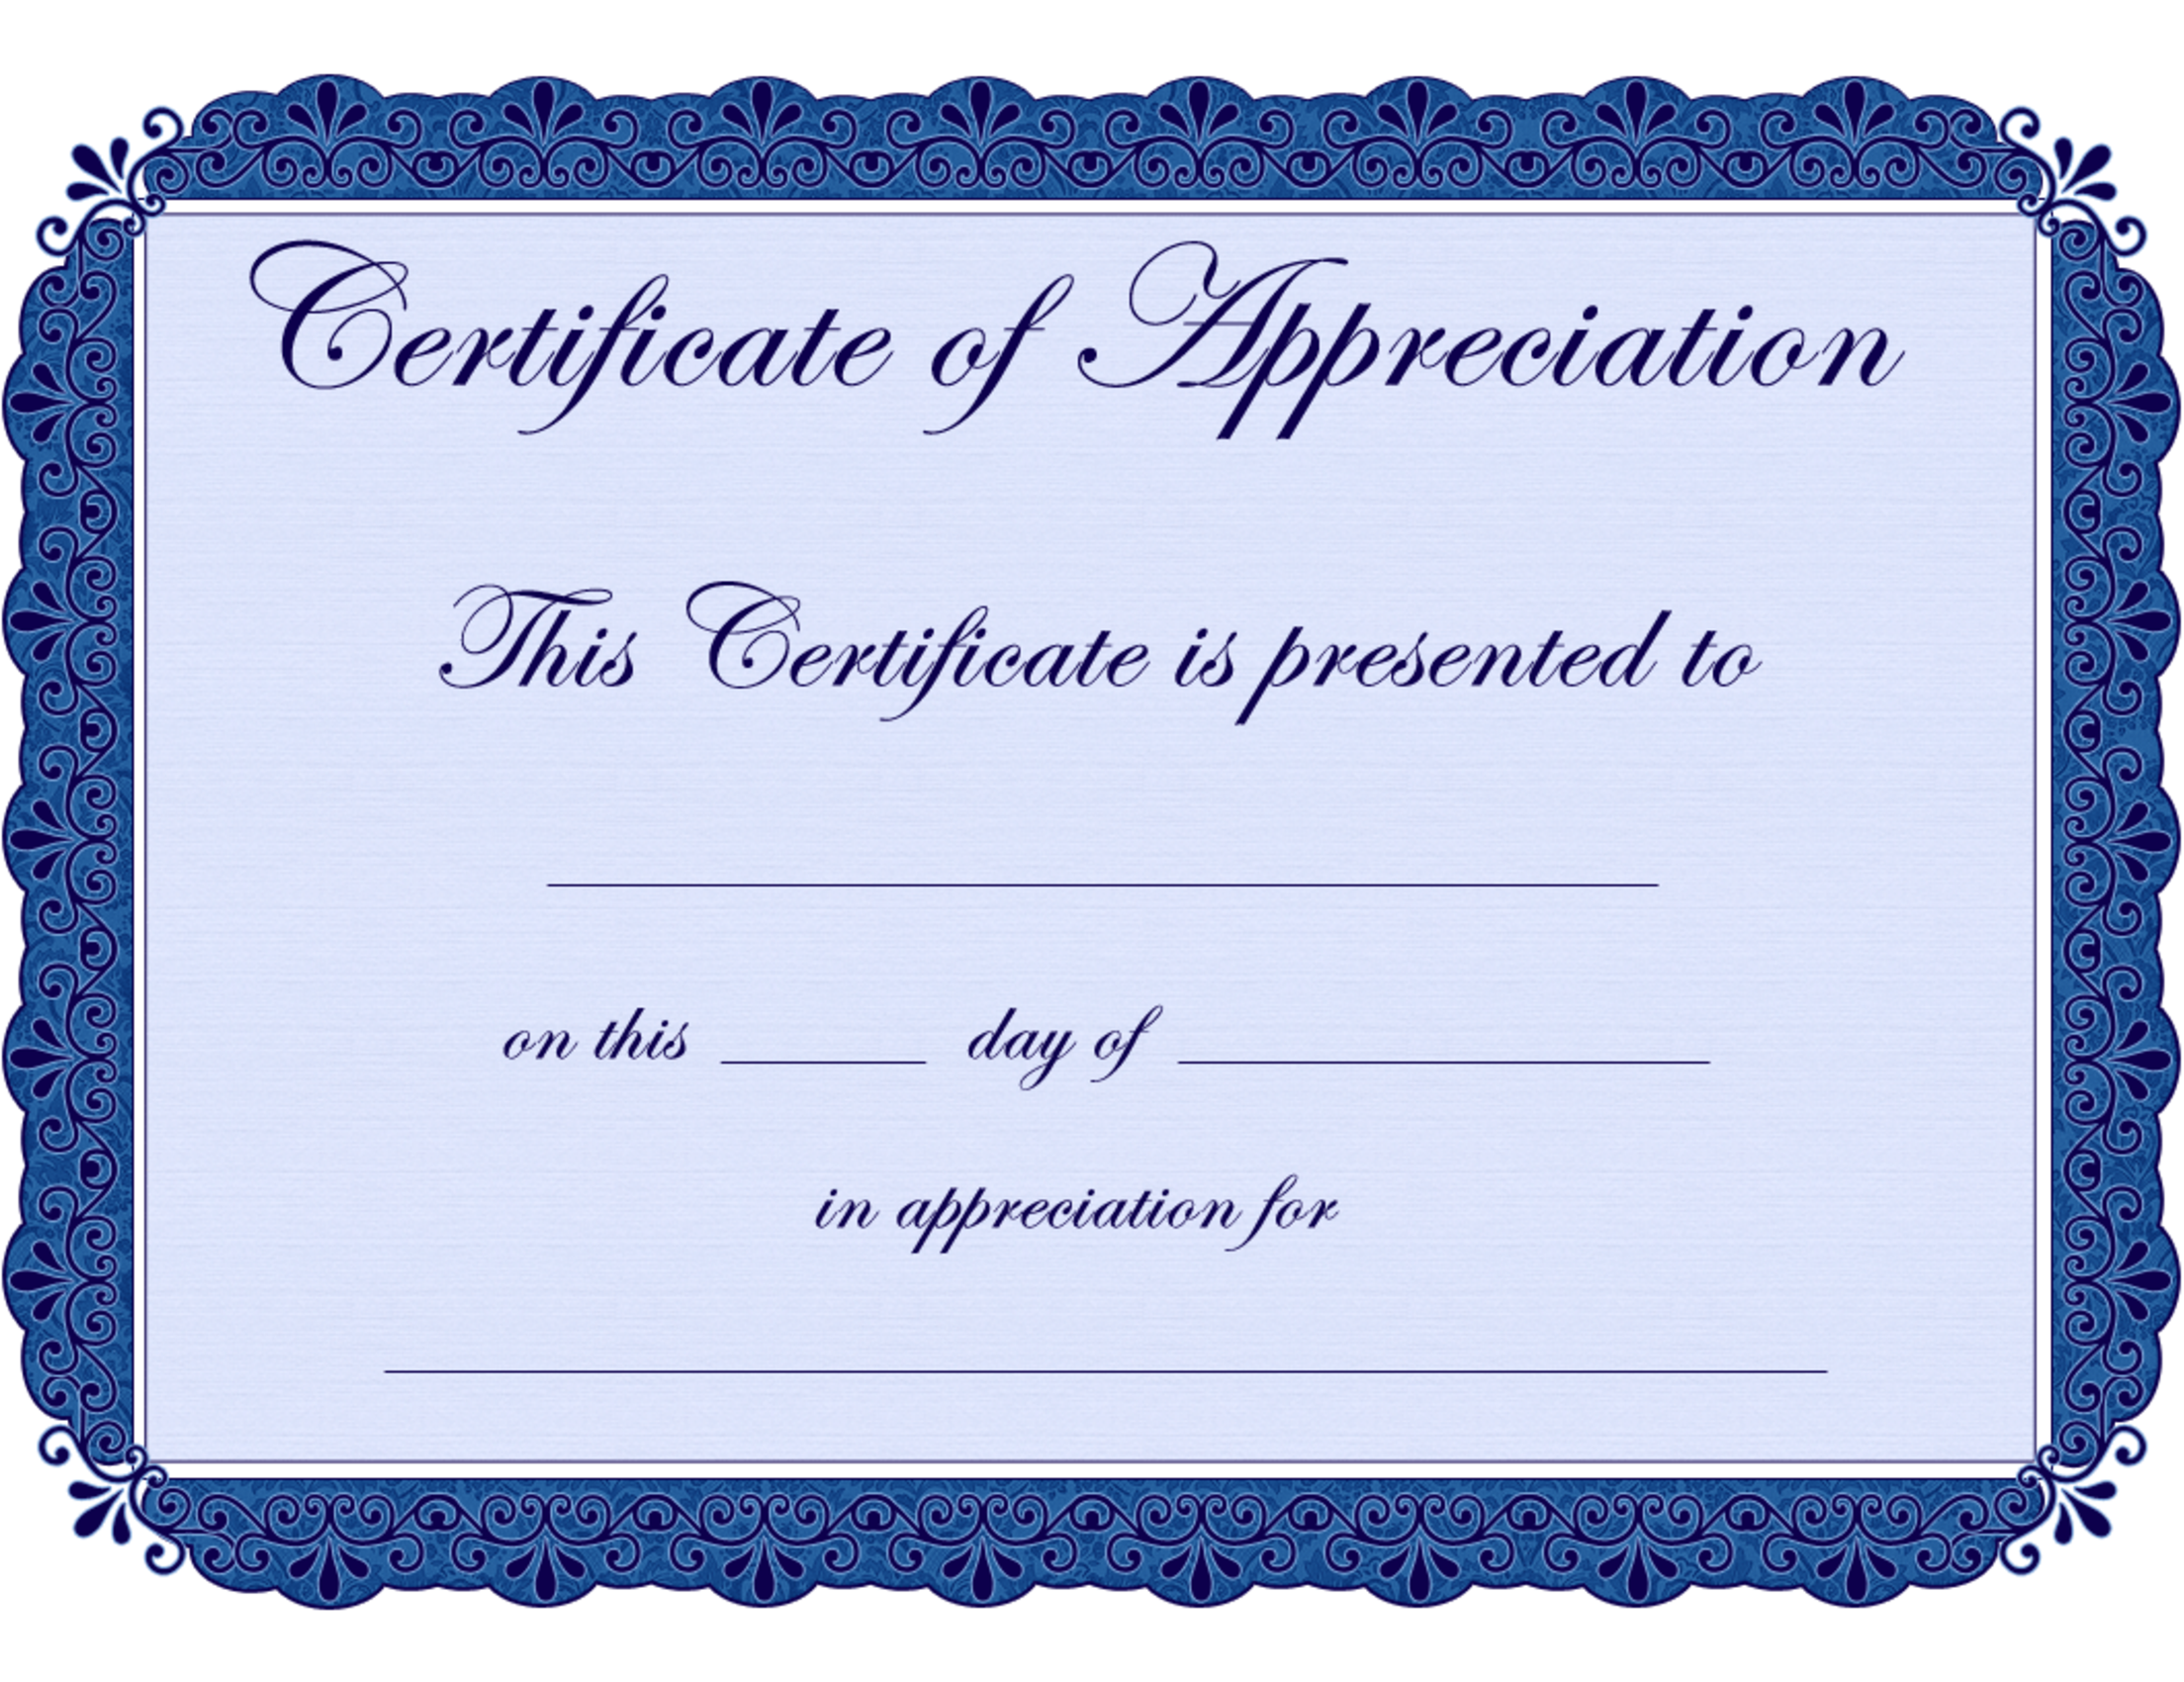 Charming Free Printable Certificates Certificate Of Appreciation Certificate .